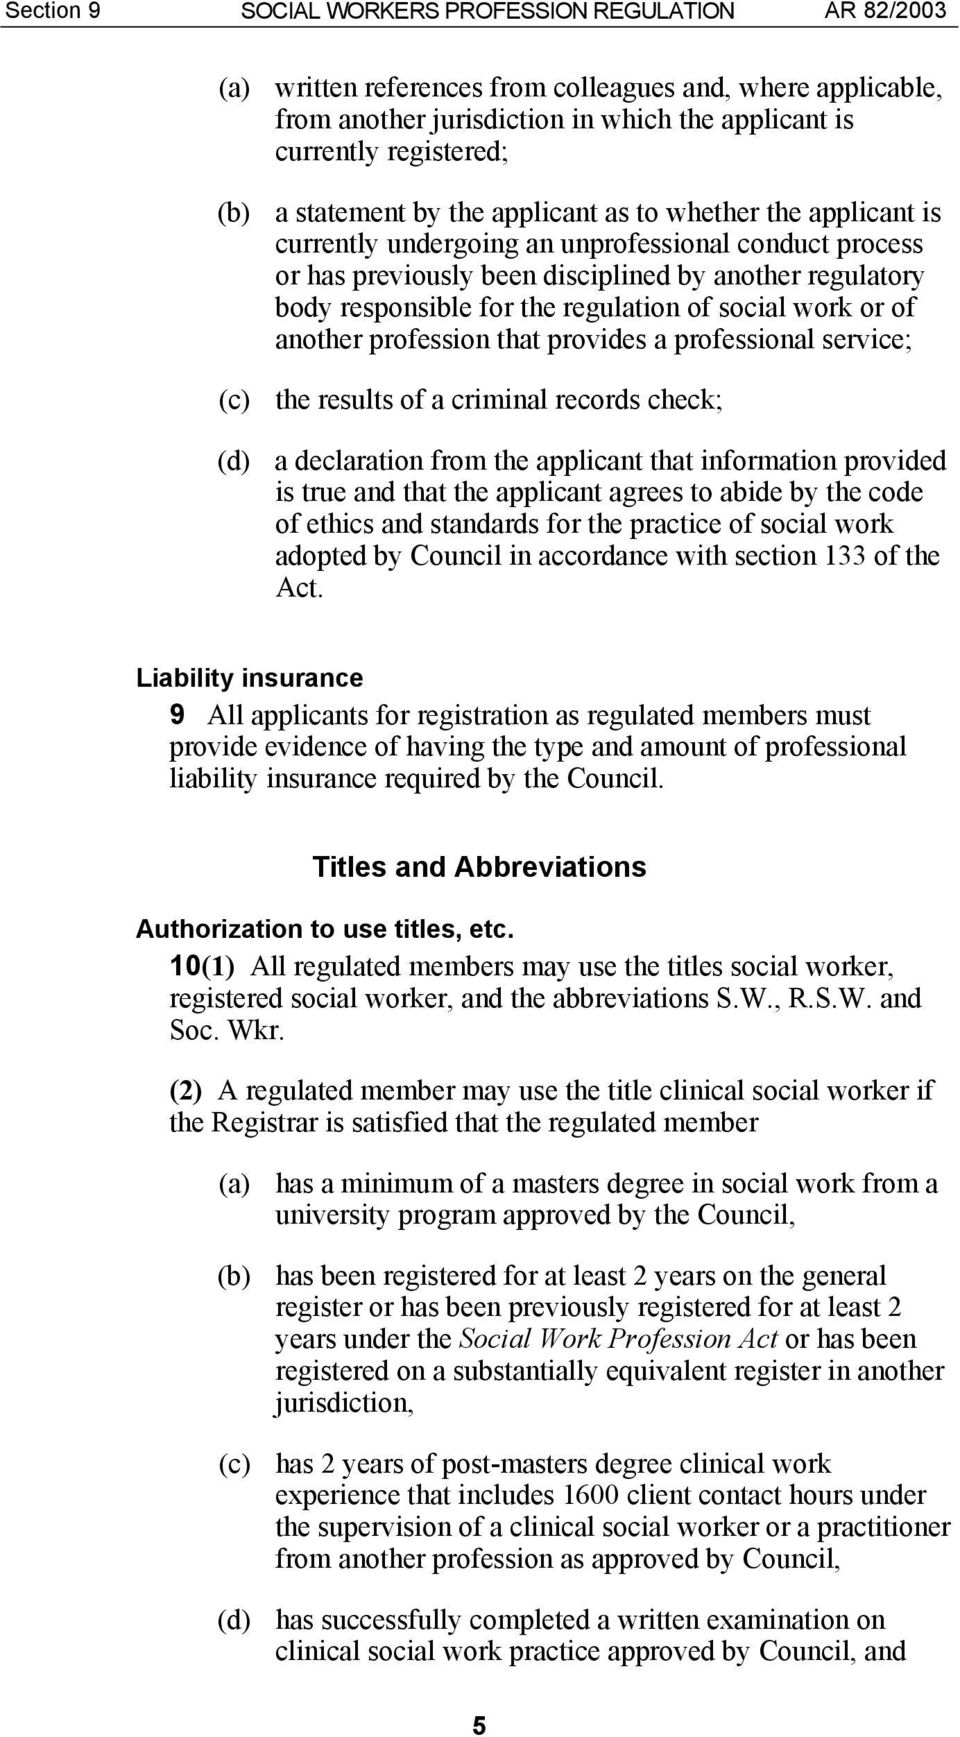 regulation of social work or of another profession that provides a professional service; (c) the results of a criminal records check; (d) a declaration from the applicant that information provided is